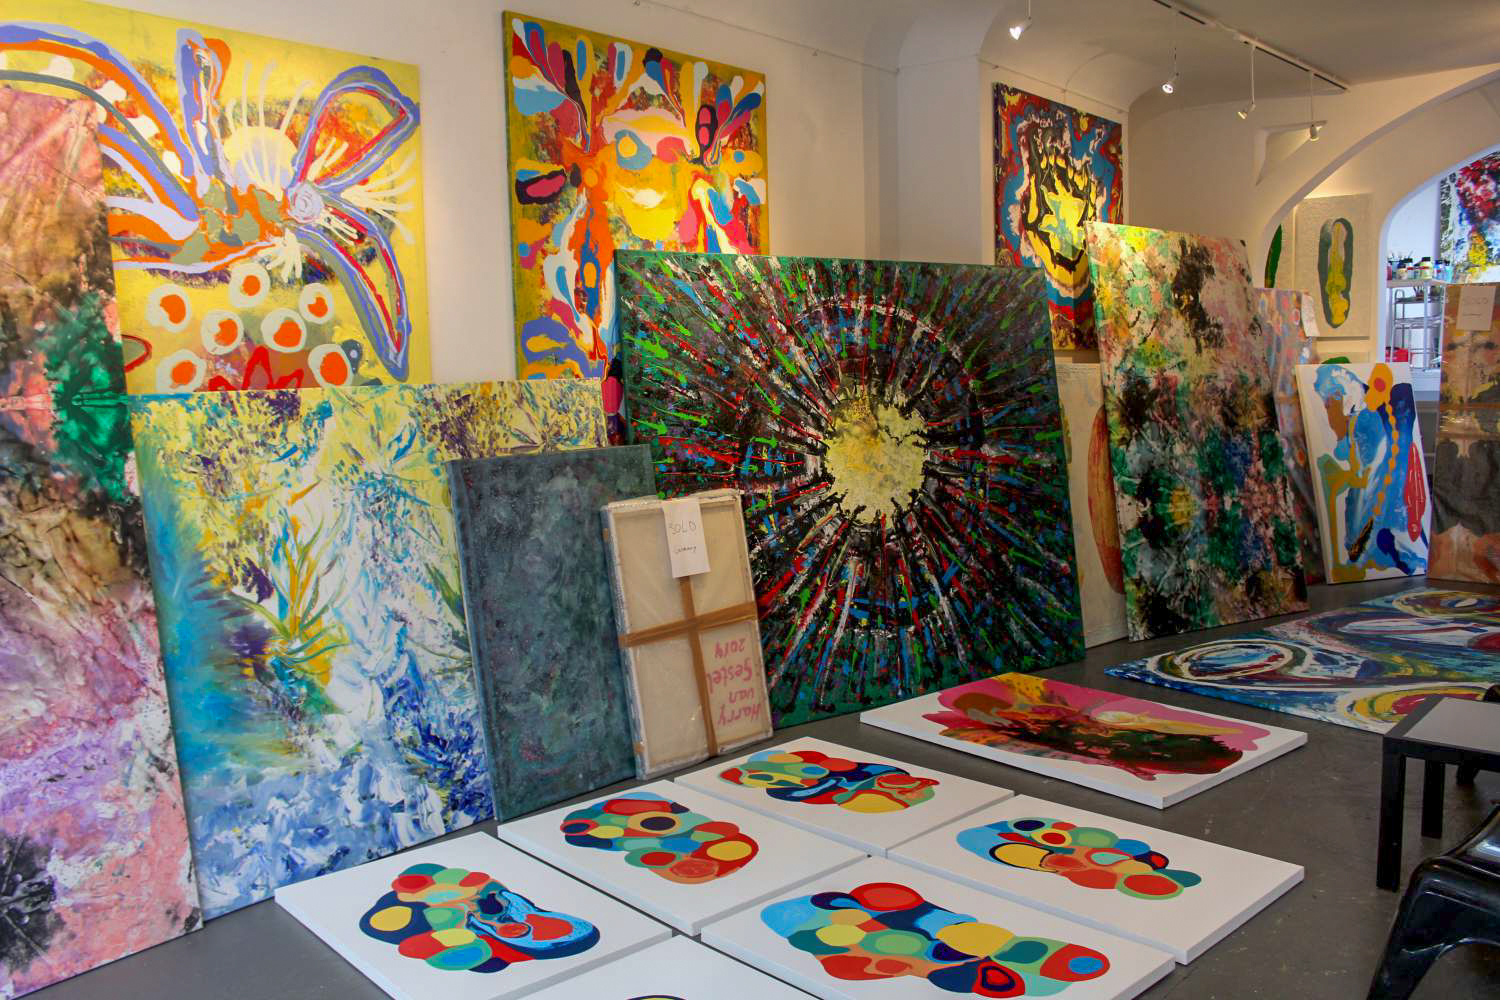 Large colorful paintings in the art studio Harry van Gestel in Amsterdam